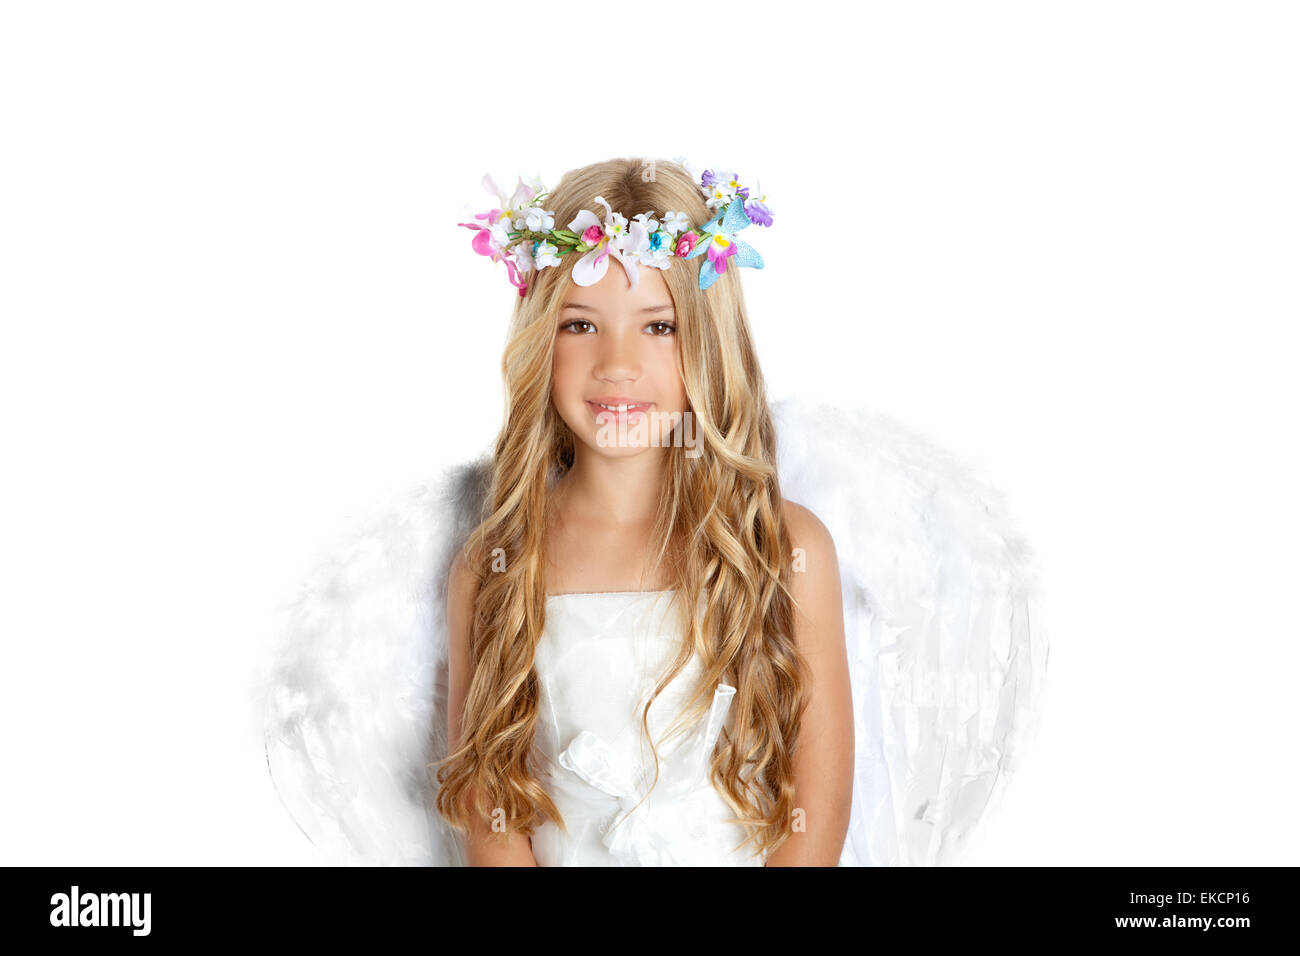 Angel little girl with wings and children flowers crown stock photo angel little girl with wings and children flowers crown izmirmasajfo Gallery